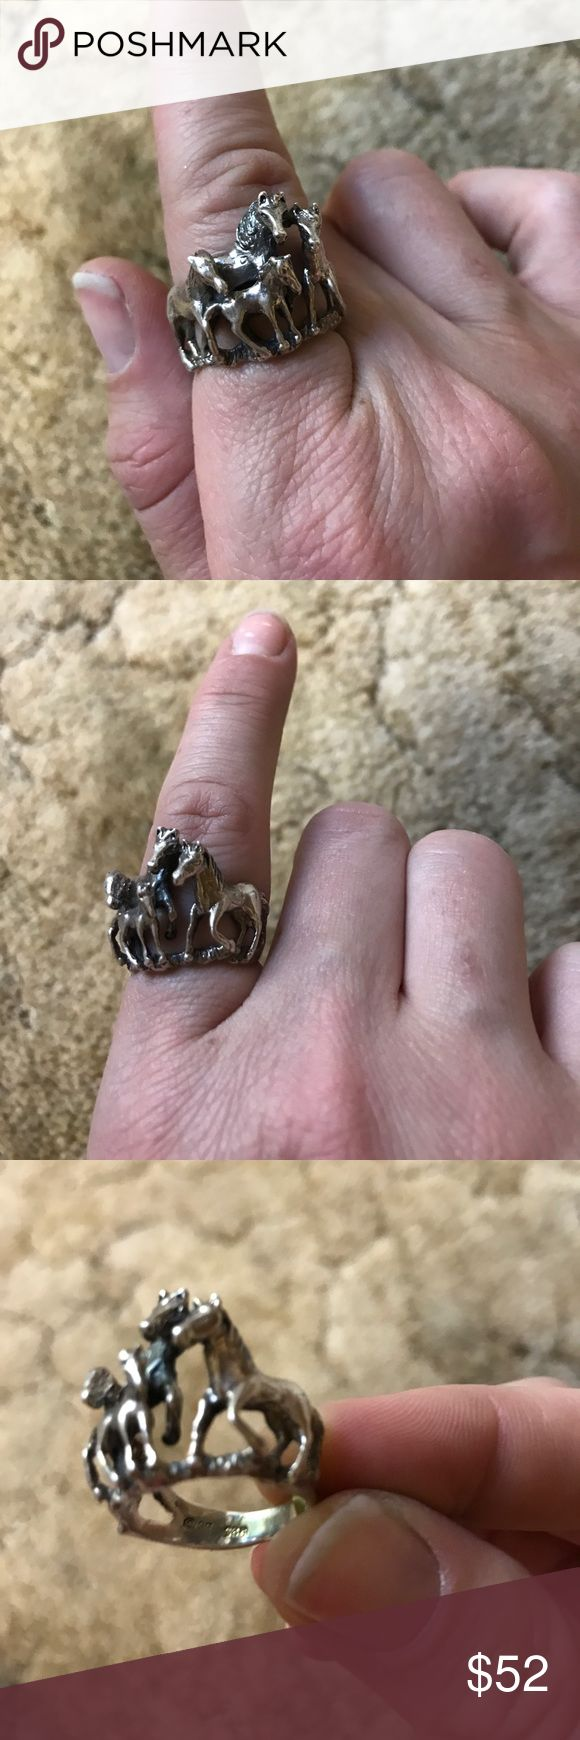 Sterling Silver Horse Ring A cute gift for any horse lover! This sterling silver ring features a scene of four horses. It is approximately a size 8 and stamped 925. I have two of the same ring. Jewelry Rings